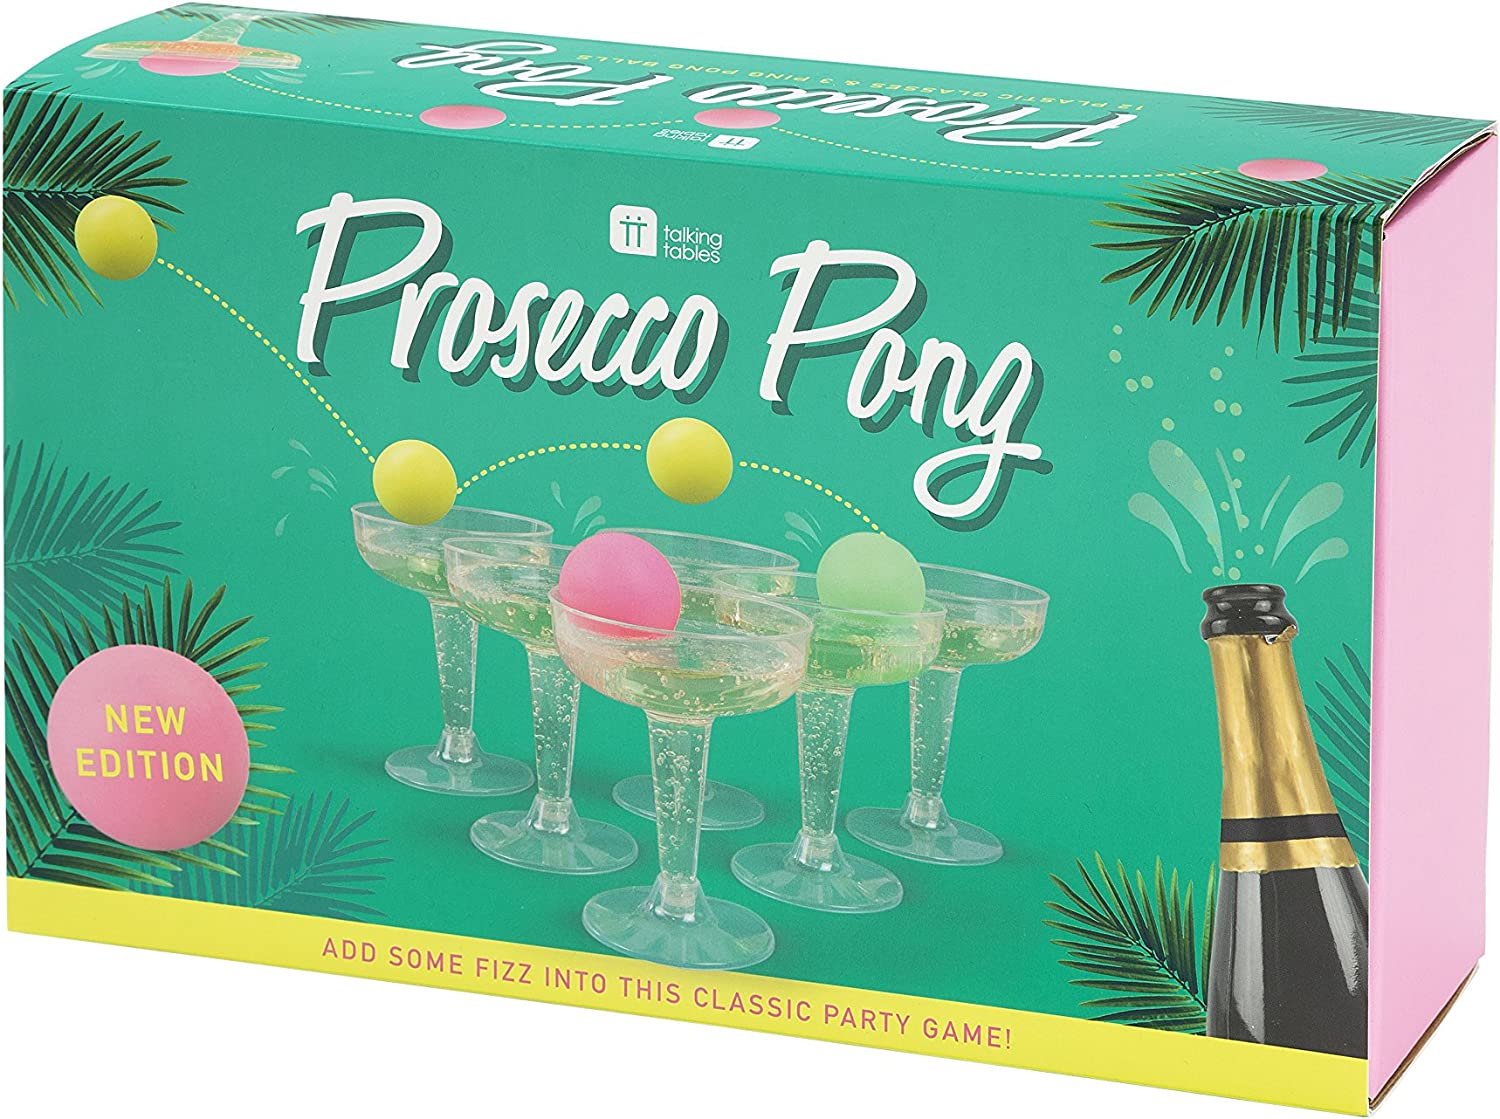 The Original Pong Prosecco Beer Drinking Game